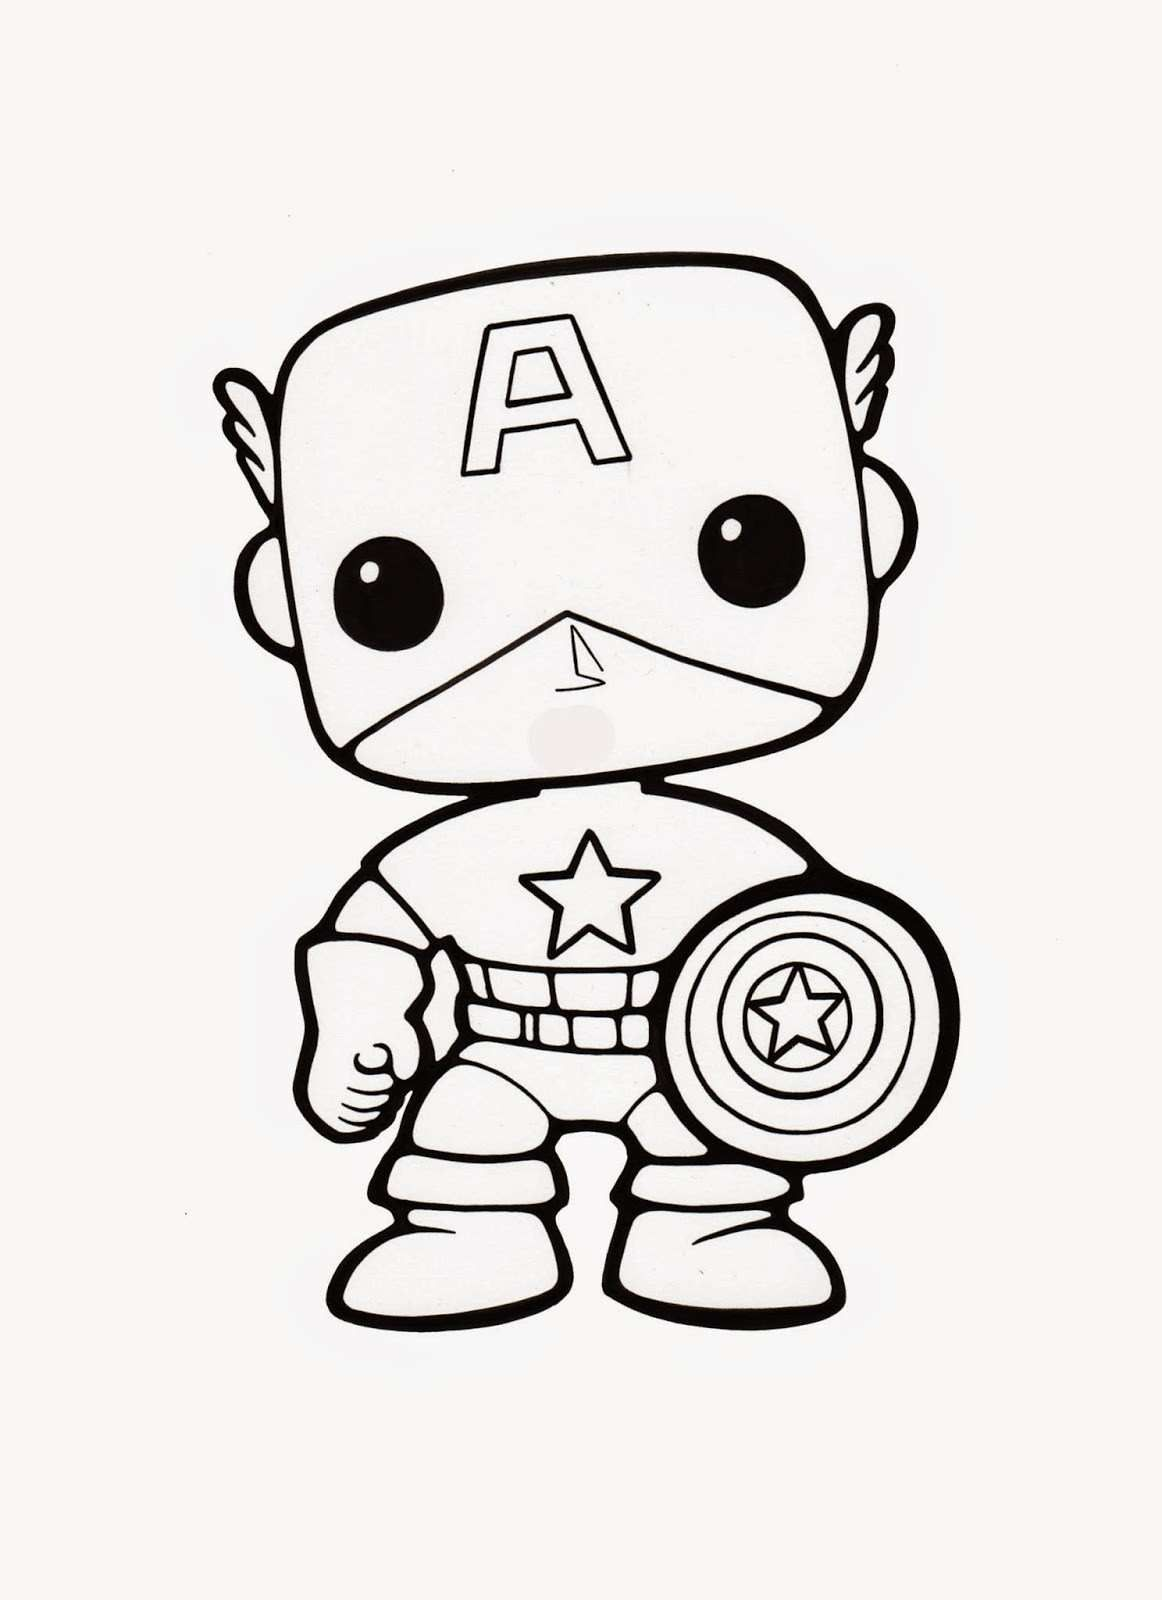 Pin By Jftt On Bautizo Superhero Coloring Cute Coloring Pages Iron Man Drawing